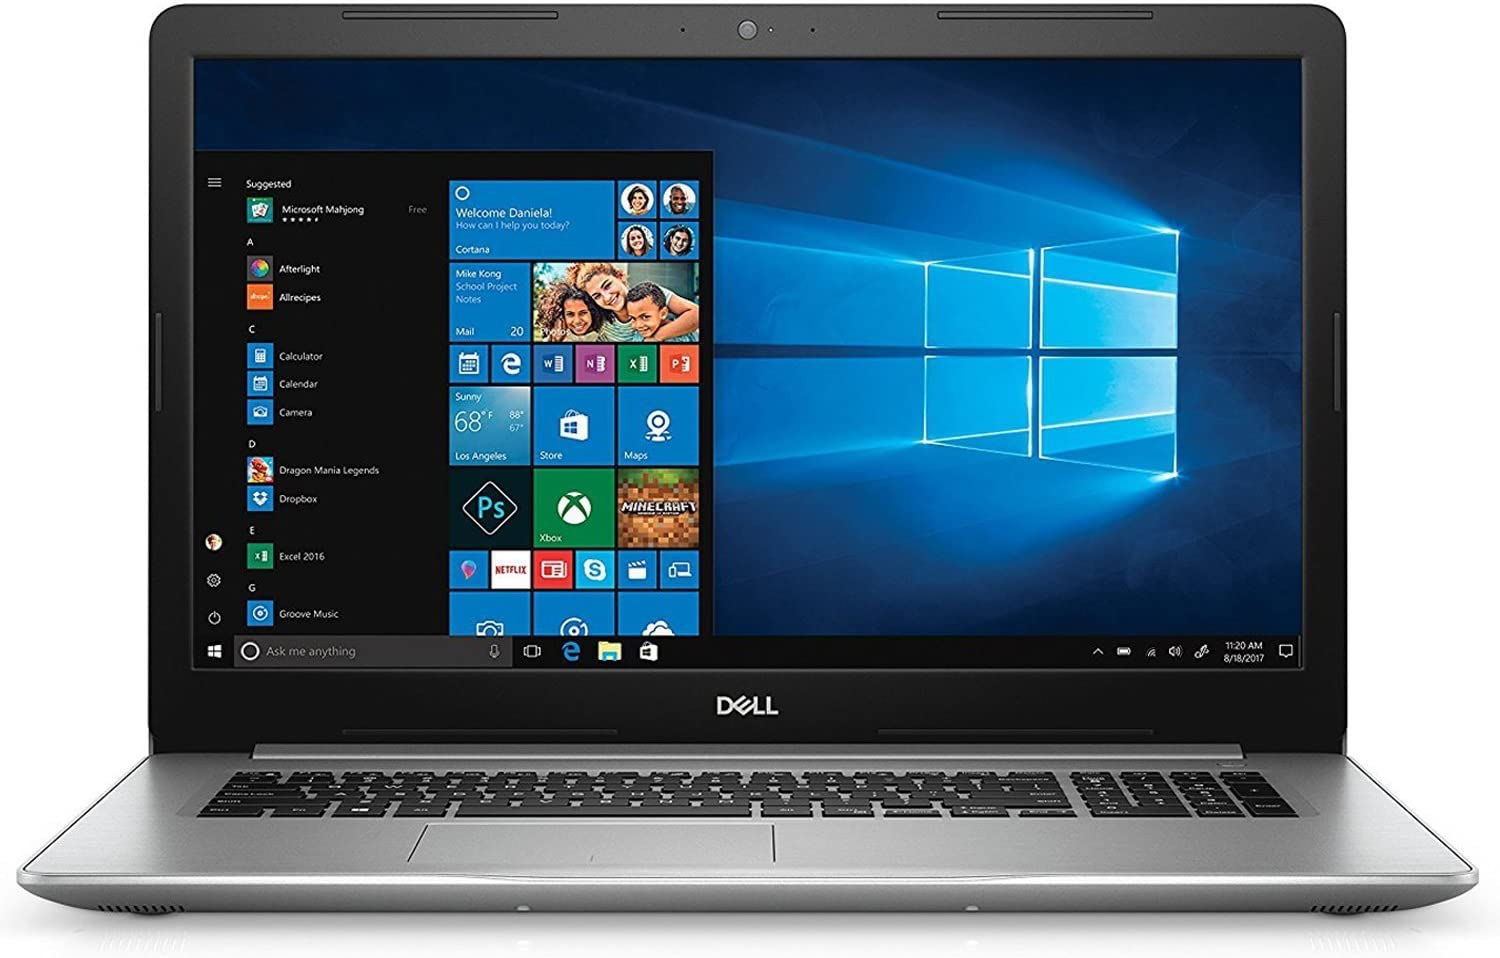 Newest Dell Inspiron 17 5000 Flagship High Performance 17.3 inch Full HD Backlit Keyboard Laptop PC, 8th Gen Intel Core i7-8550U Quad-Core, 16GB DDR4 RAM, 2TB HDD + 256GB SSD (Boot), Windows 10 Pro